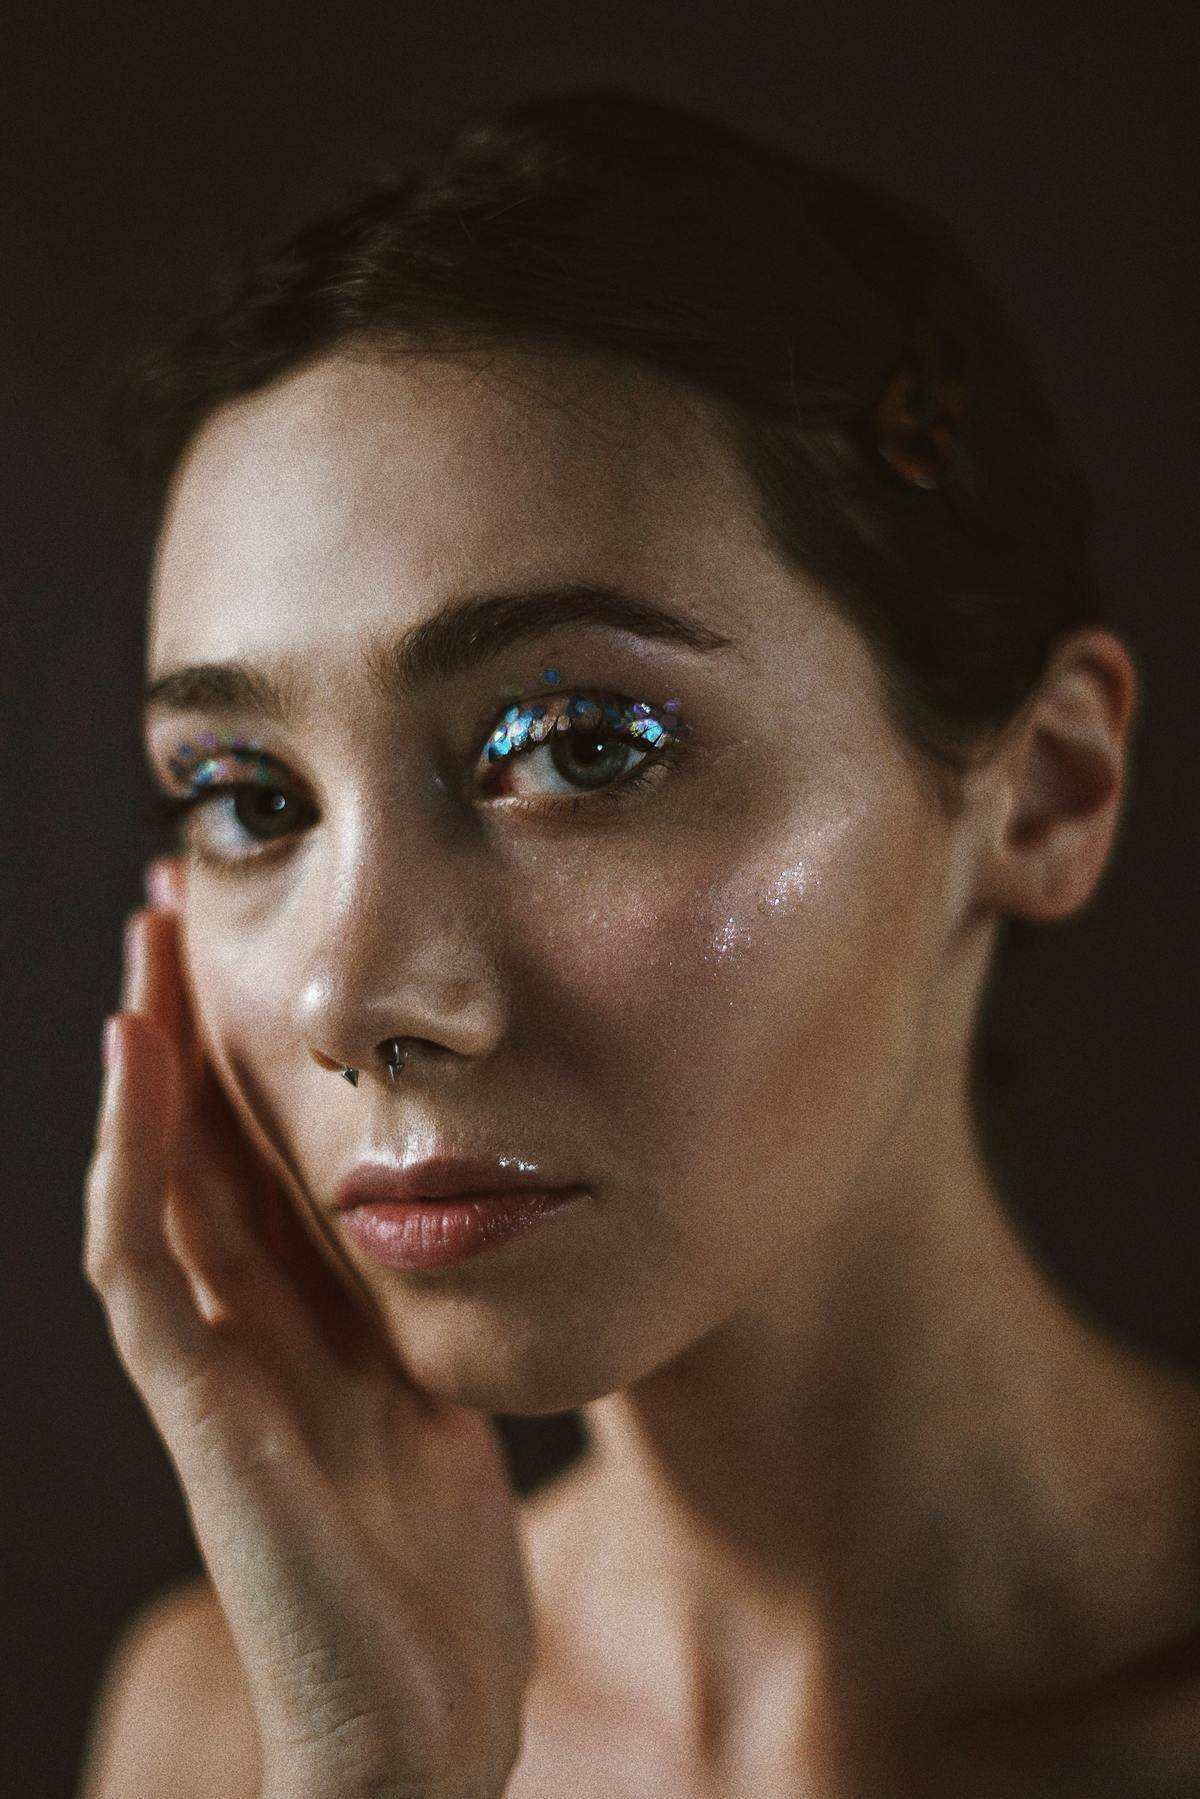 woman with sparkling eye makeup